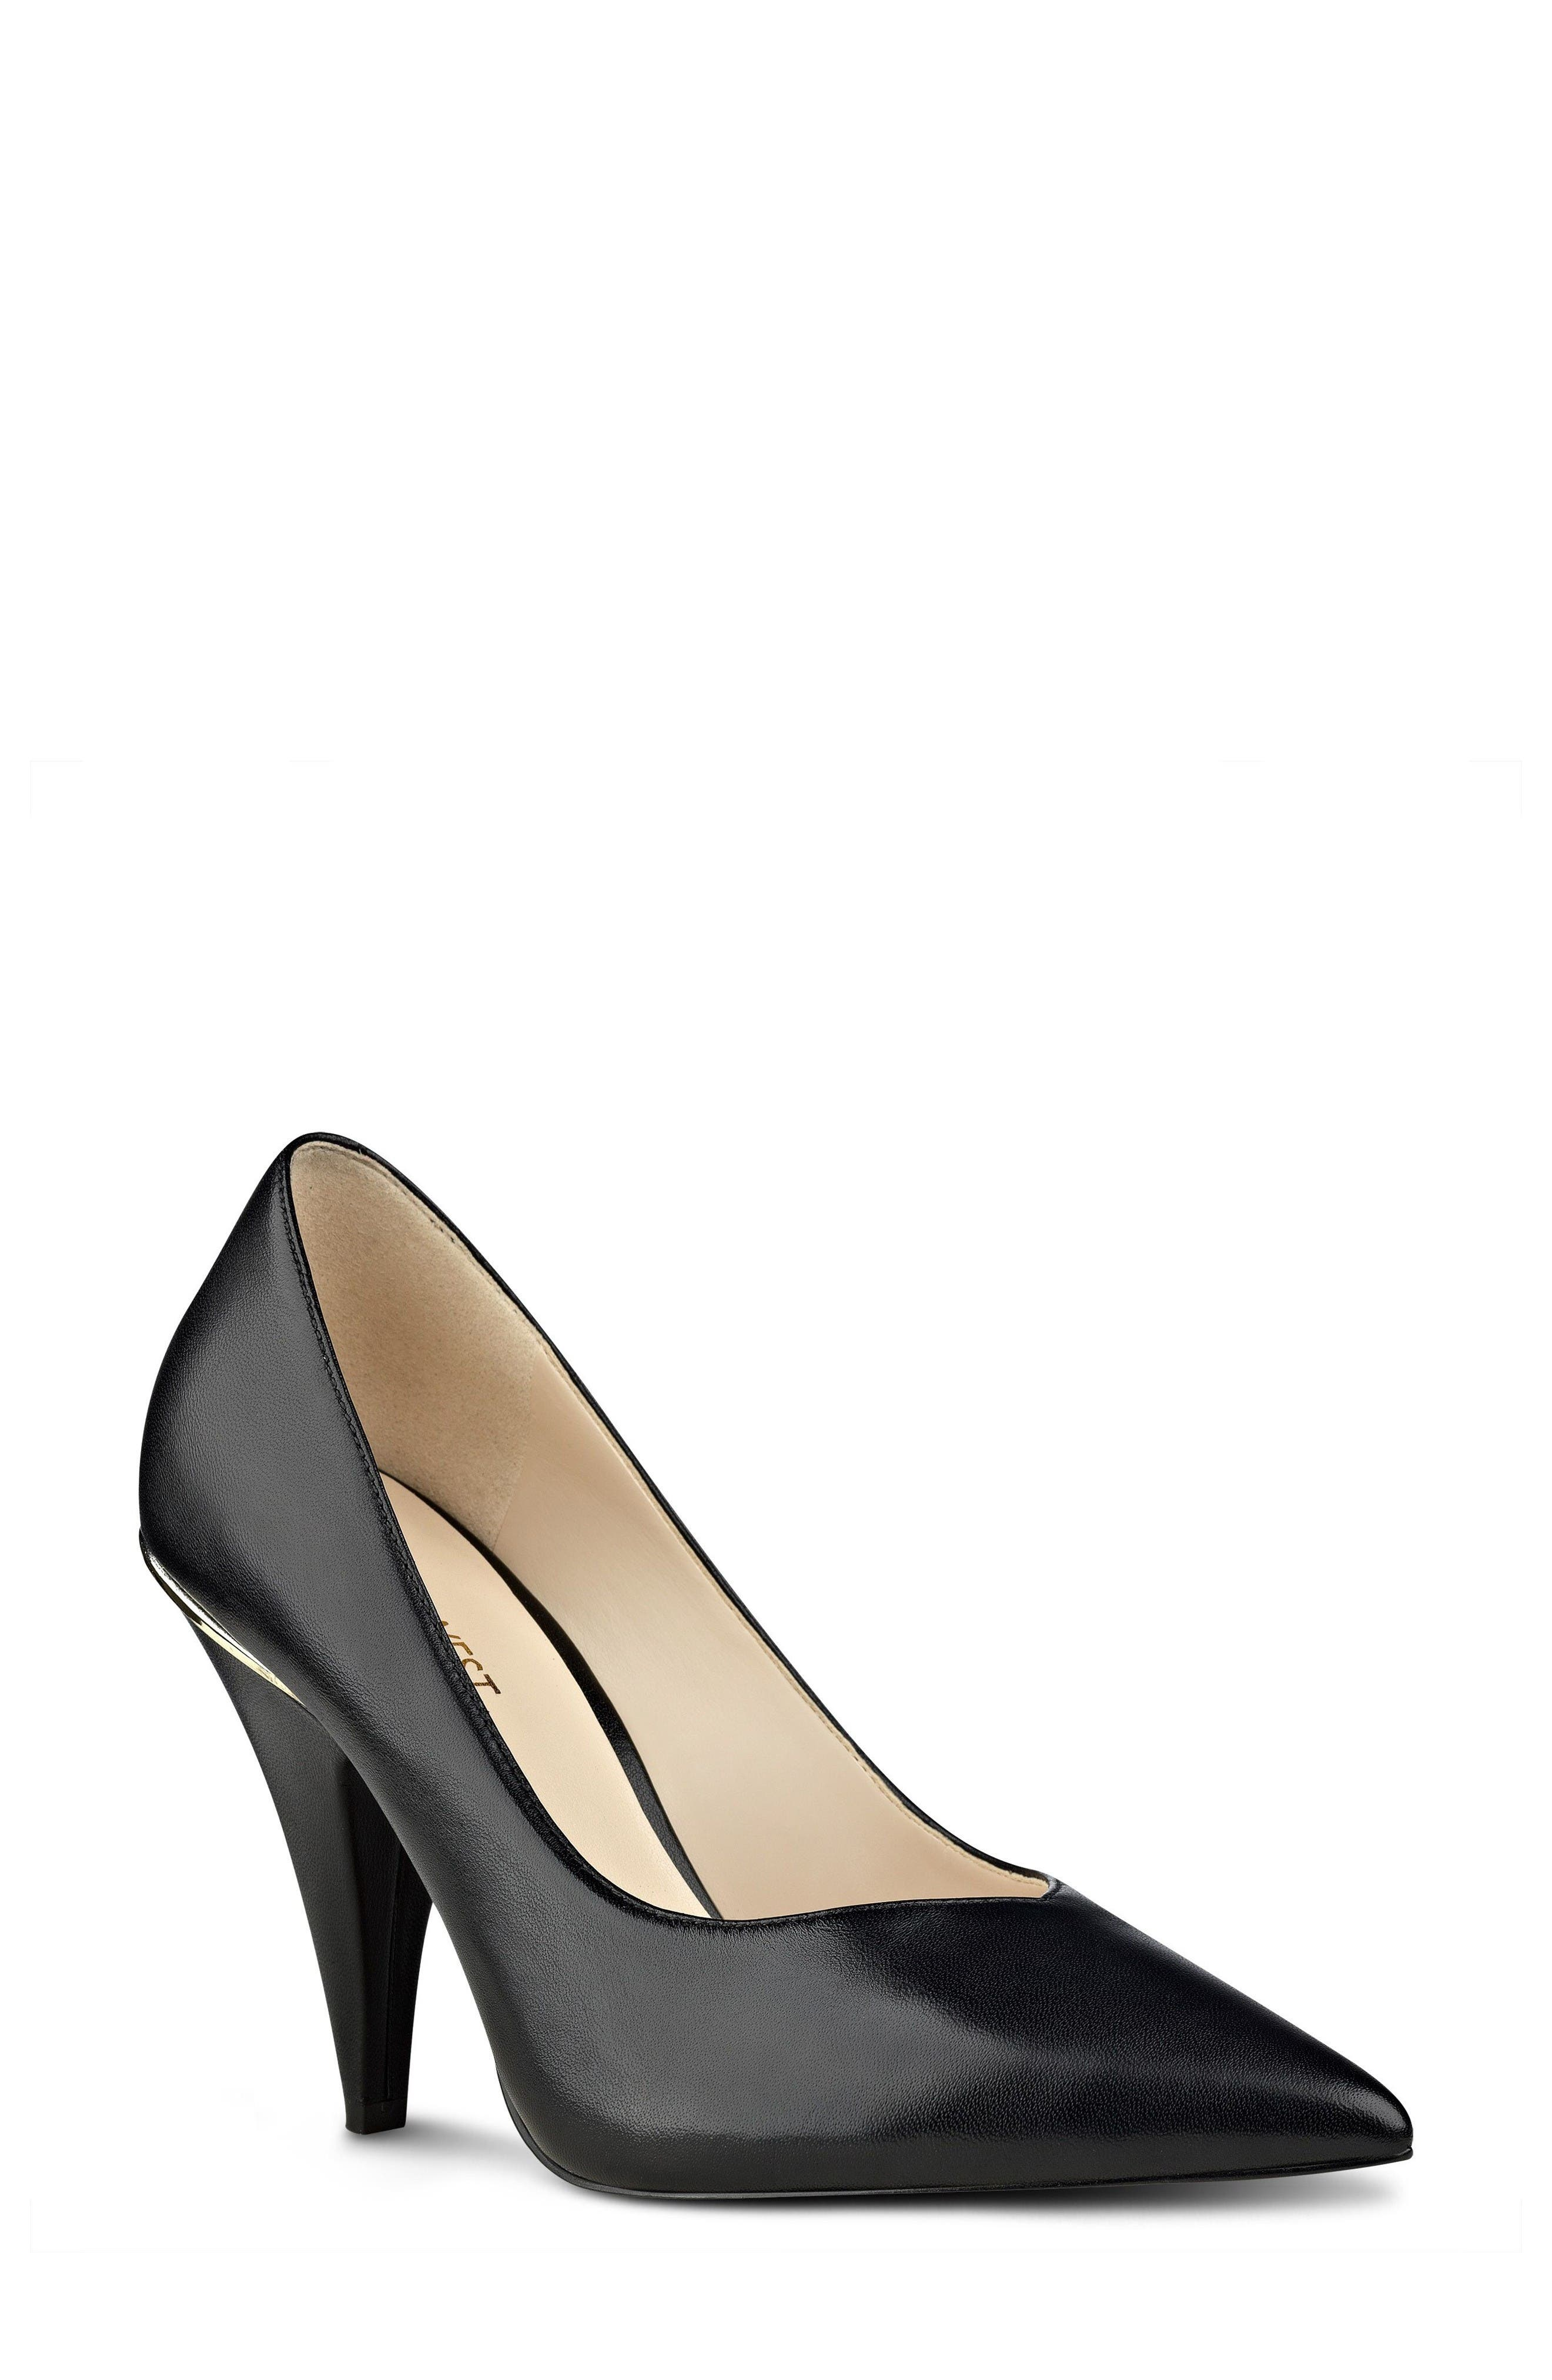 Whistles Pump,                         Main,                         color, Black Leather